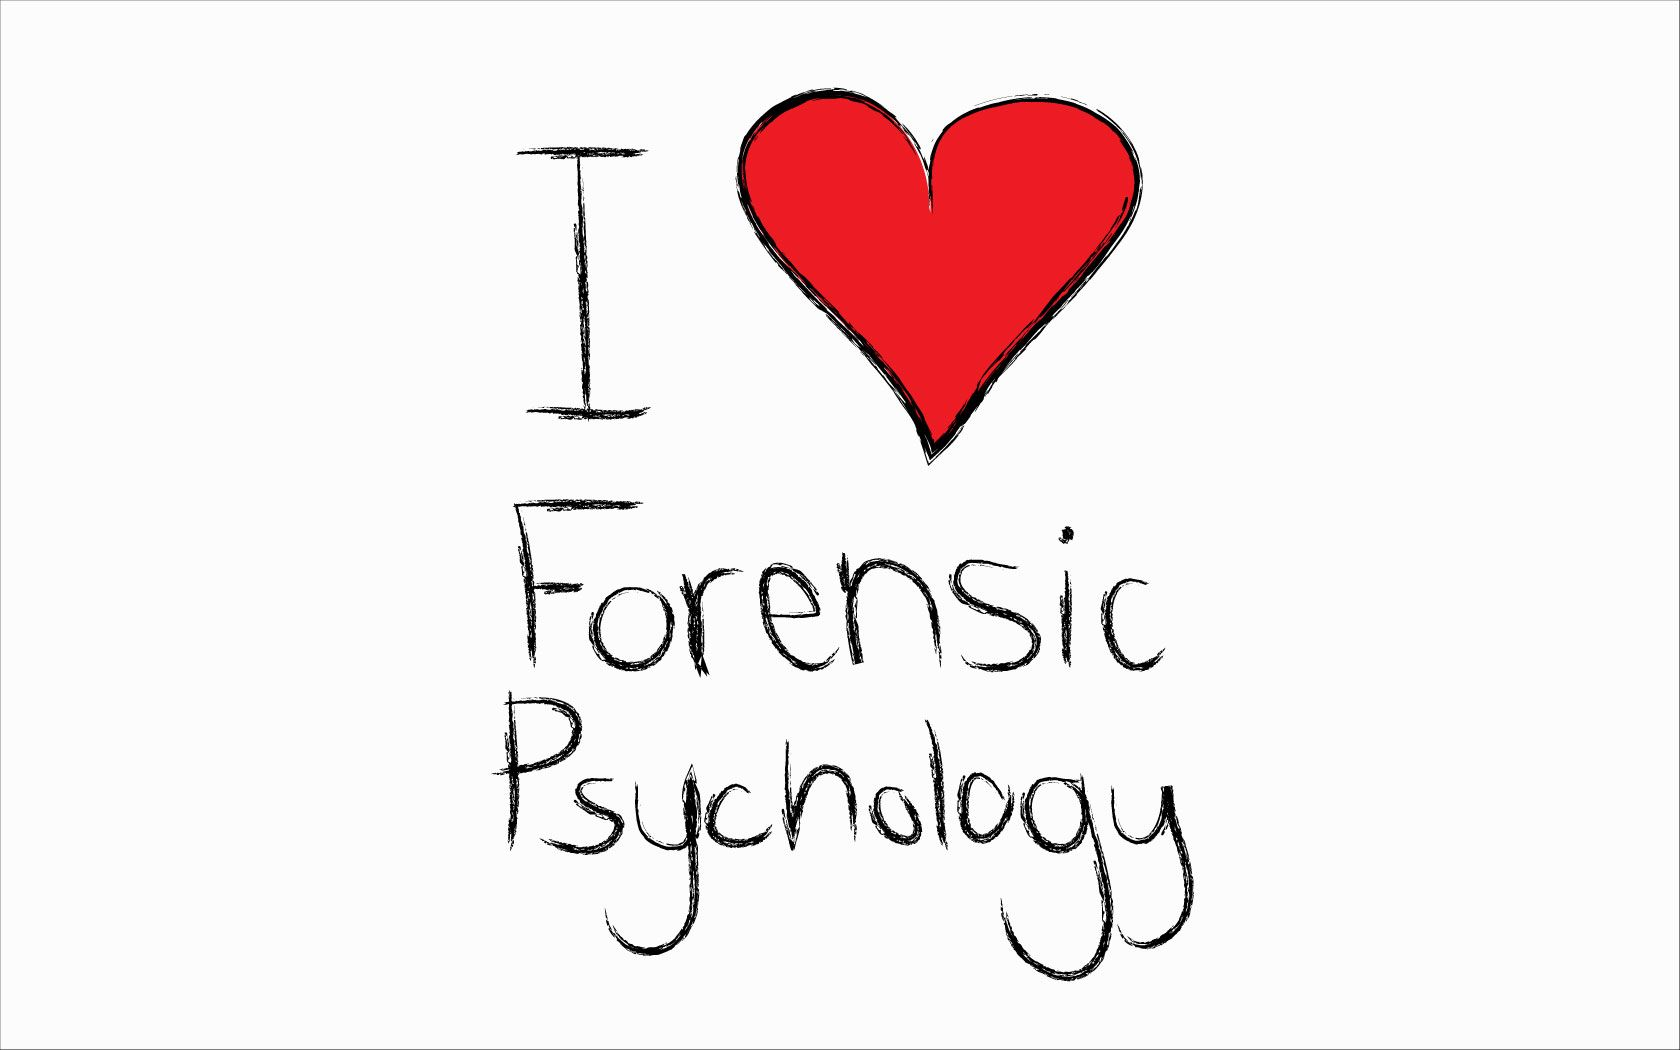 Forensic psychology ??